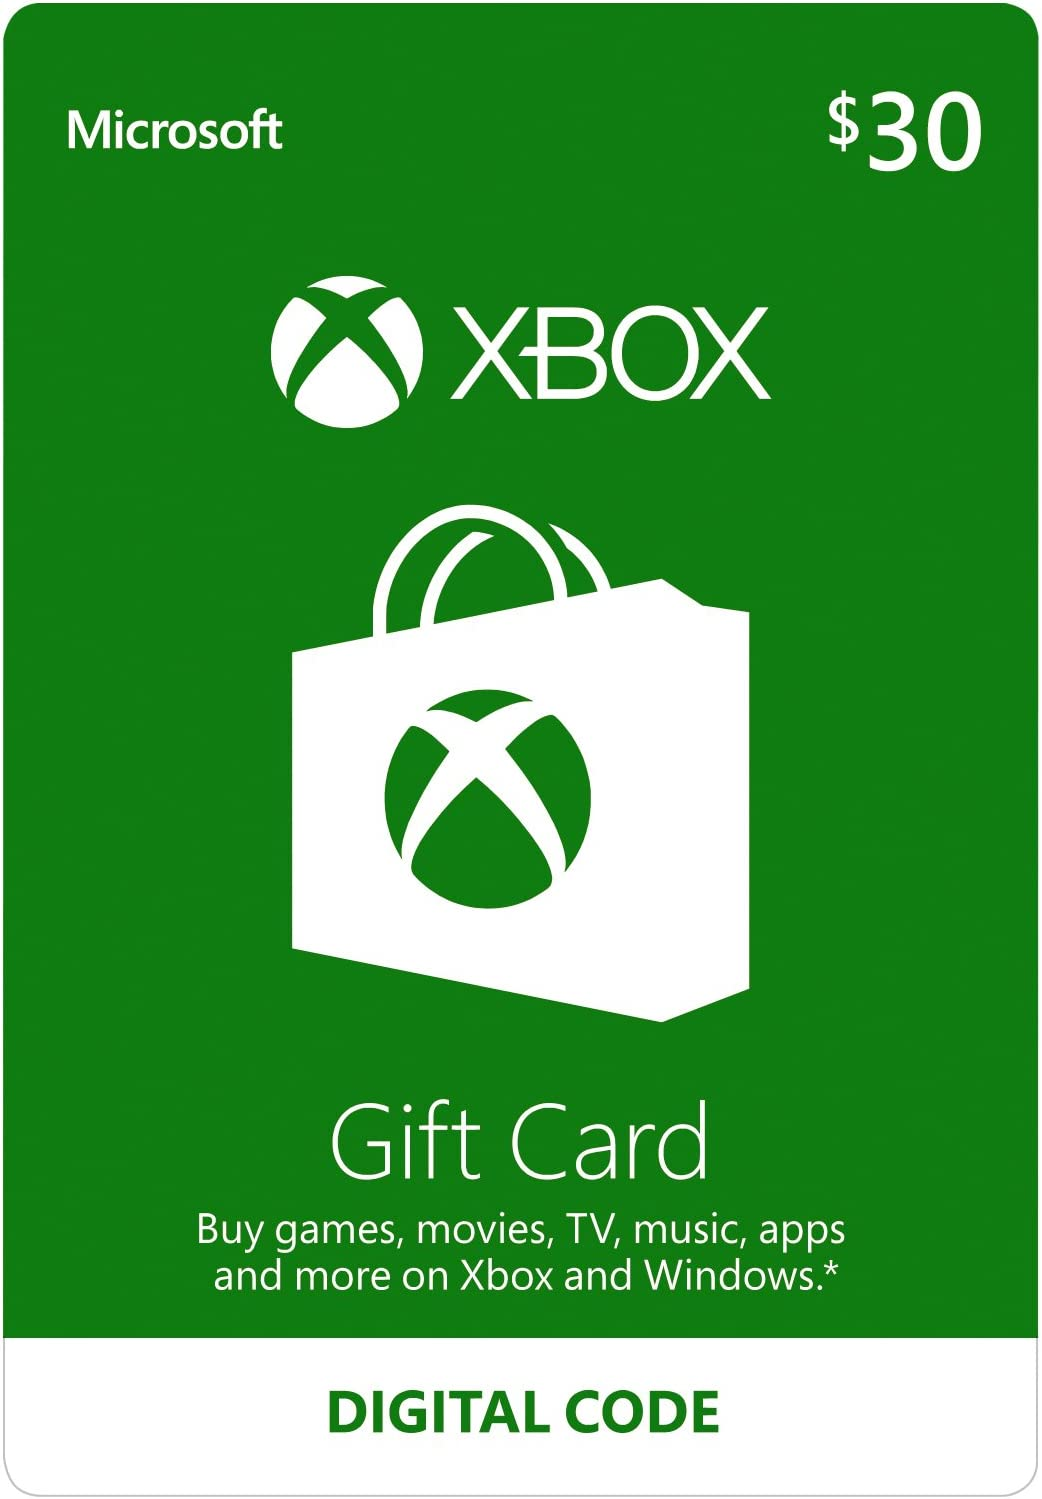 Amazon.com: $30 Xbox Gift Card - [Digital Code]: Video Games